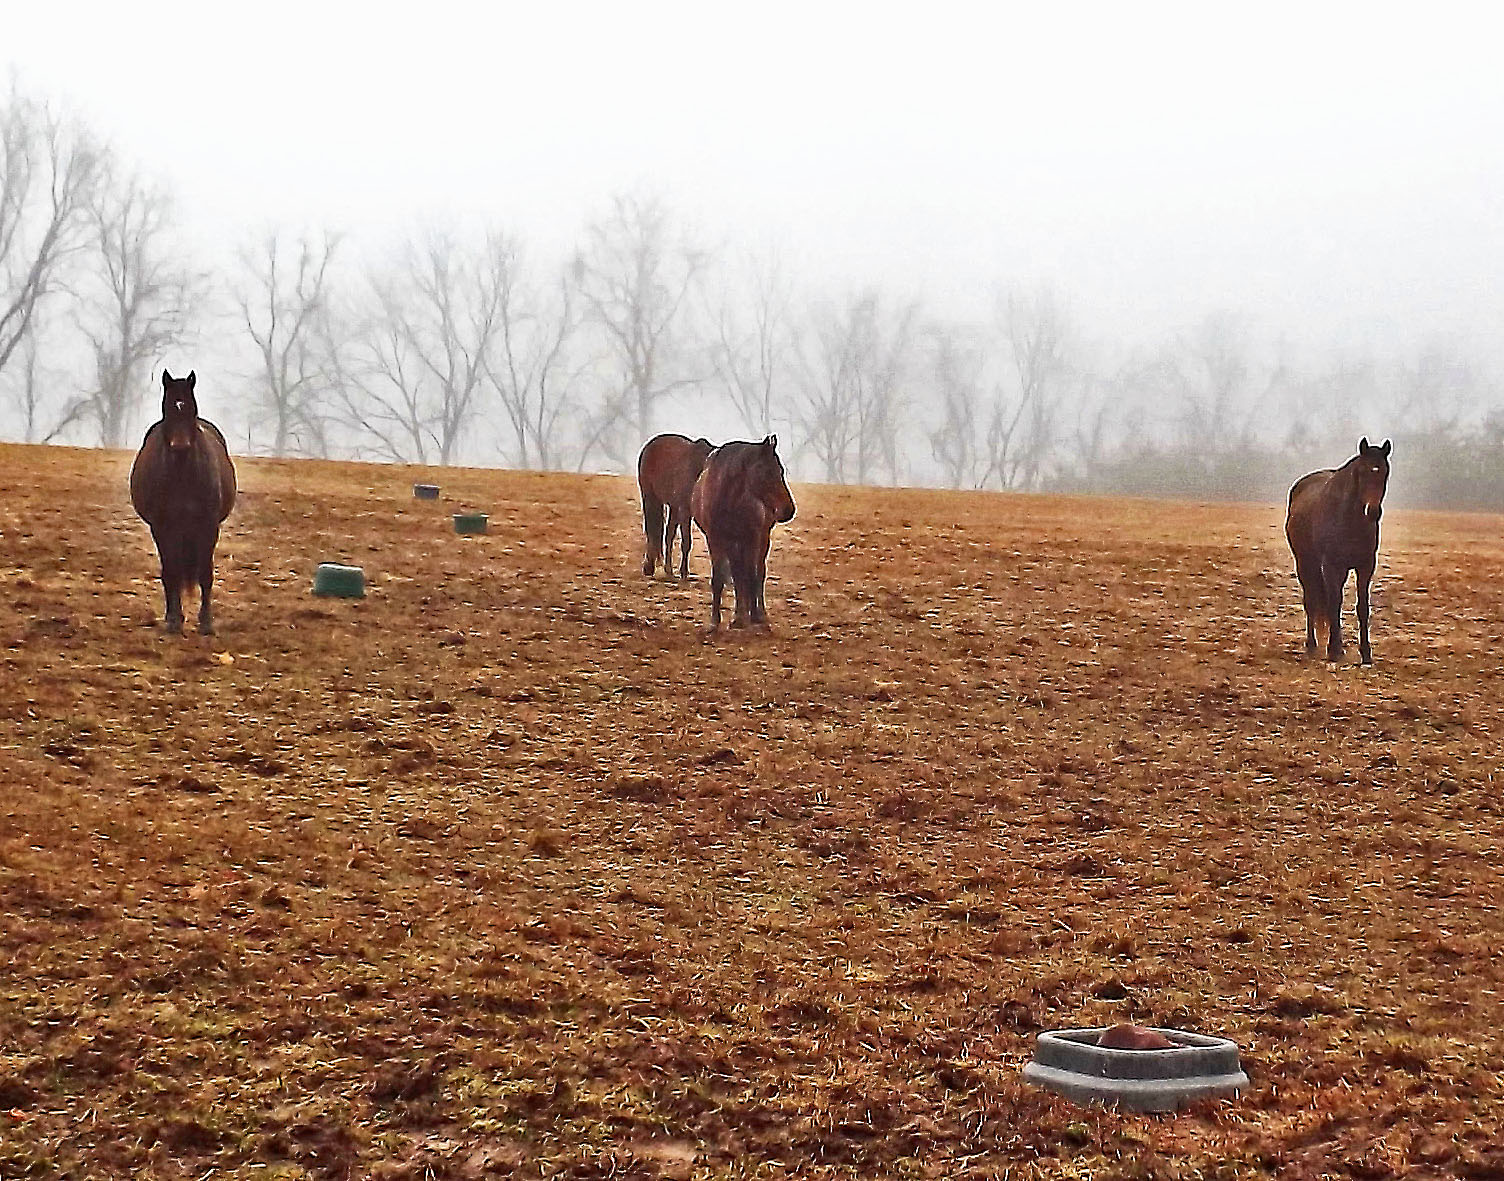 Older Horses Out Standing In Their Field On A Foggy Morning